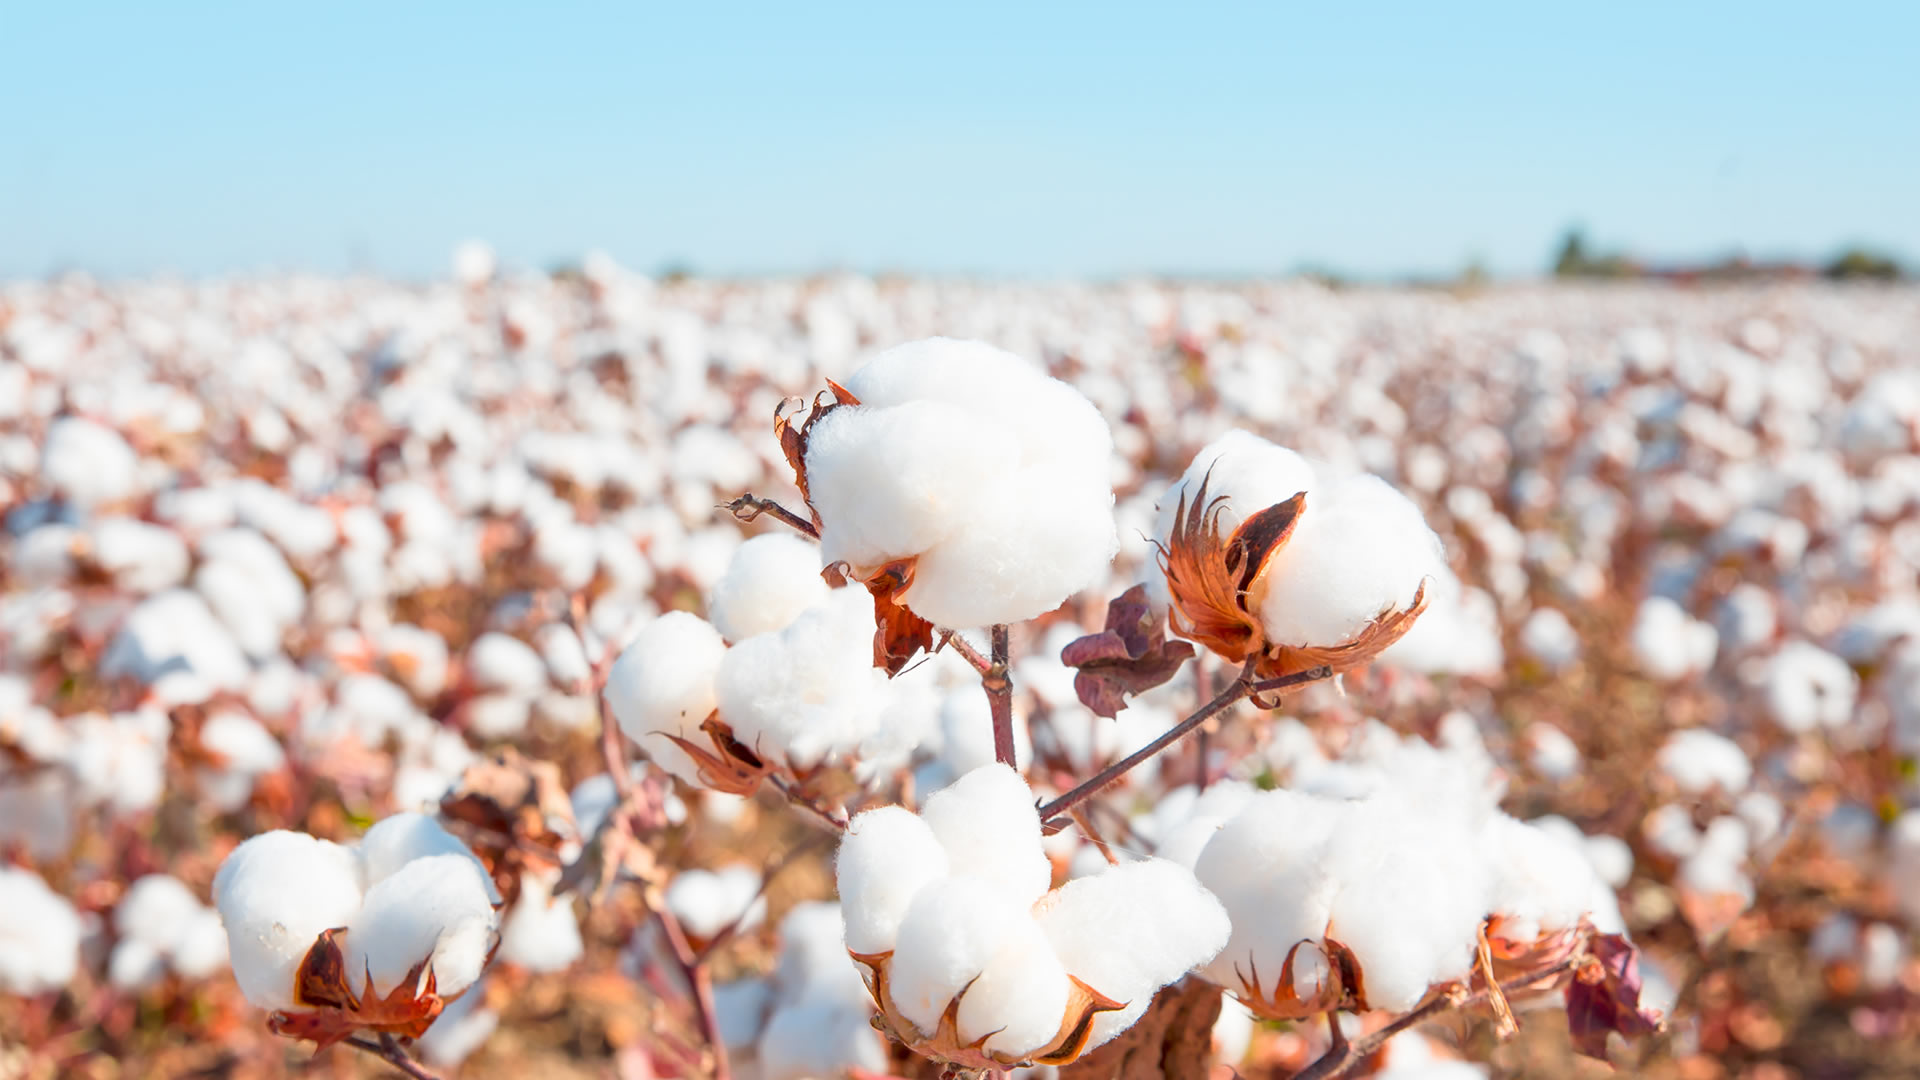 Cotton prices in Pakistan pushed to an 11 year high